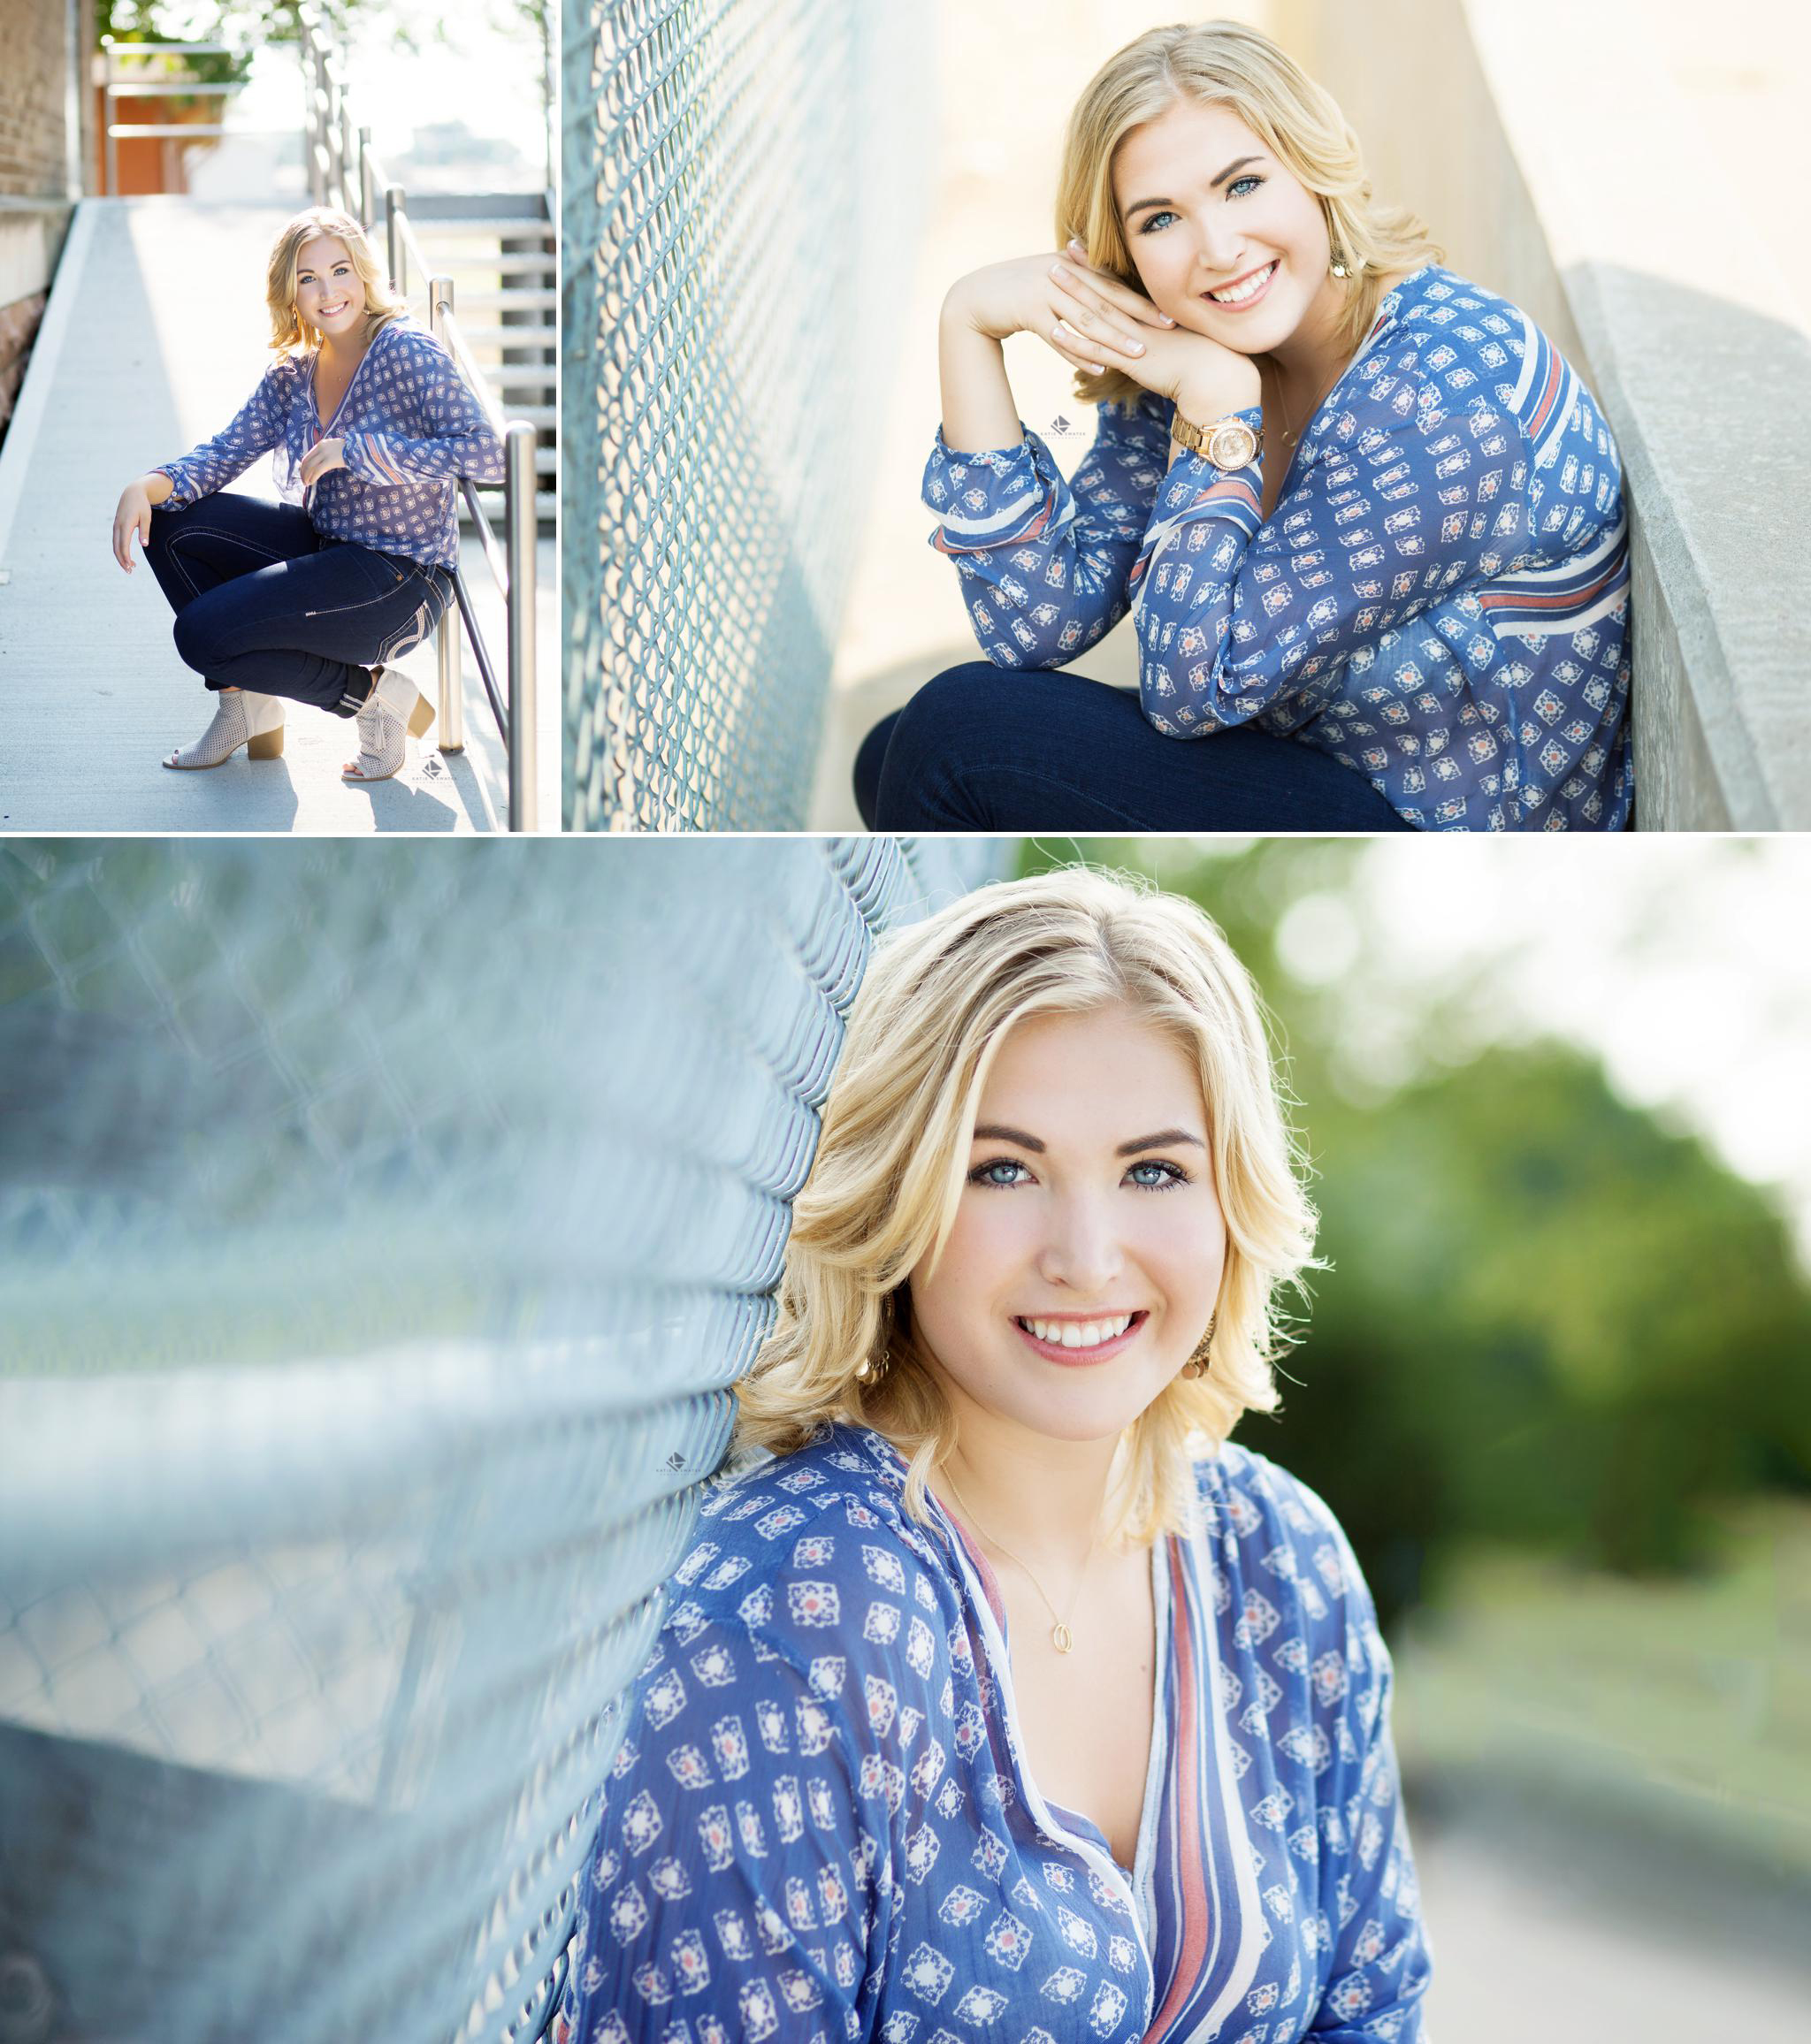 Urban Senior by Katie Swatek Photography | Chainlink Fence Senior by Katie Swatek Photography